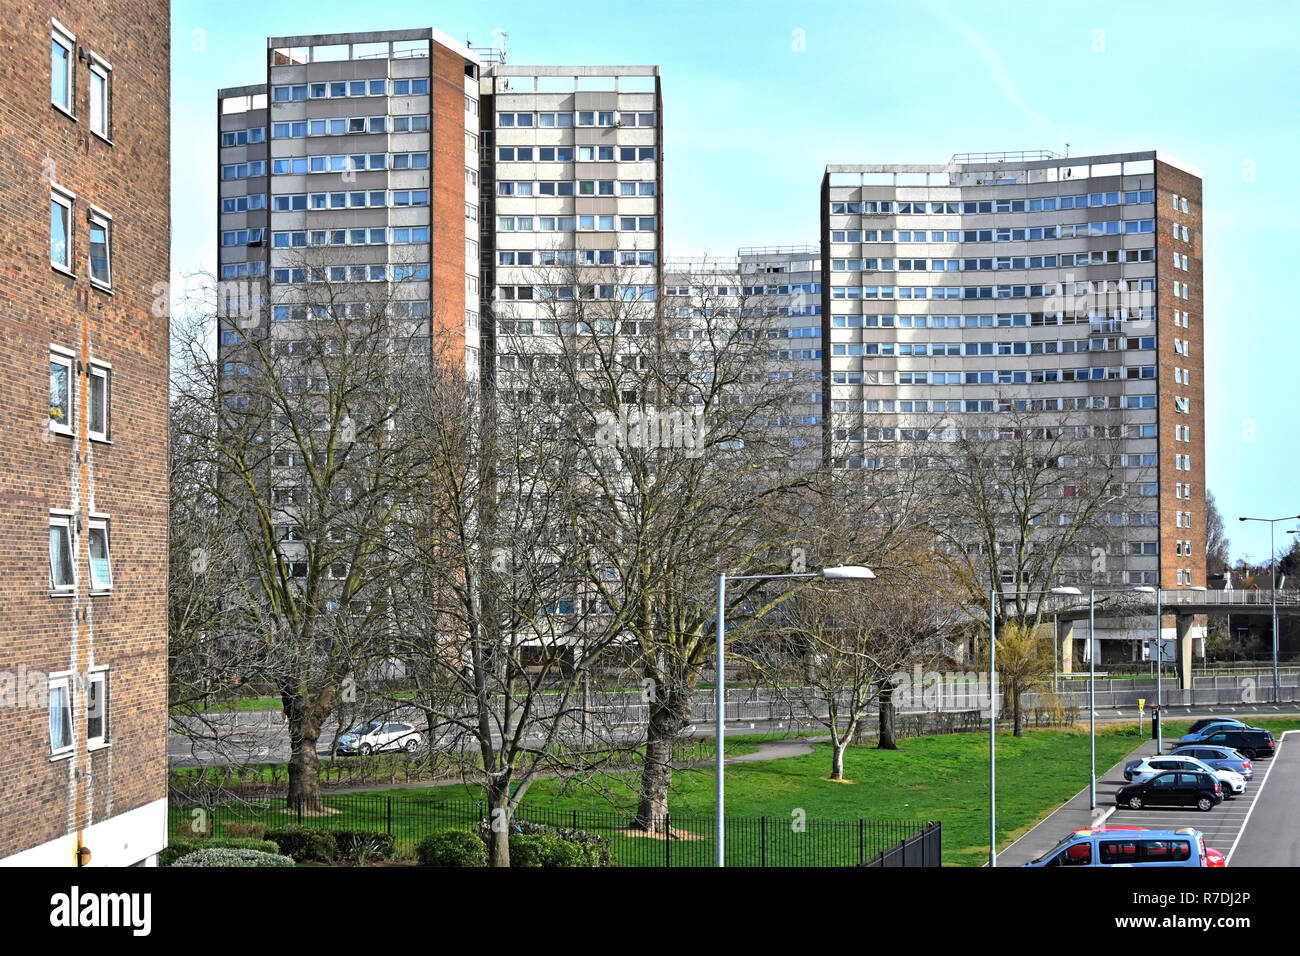 Part of a council housing estate of high rise block of homes & flats seen beyond winter trees close to town centre Southend on Sea Essex England UK Stock Photo